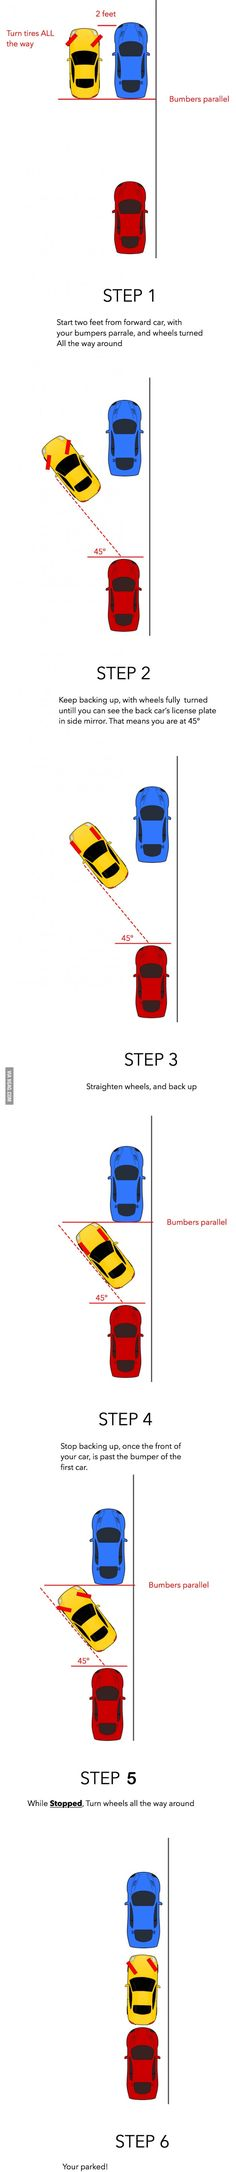 Parallel Parking Hack (Taught to me by a bus driver)